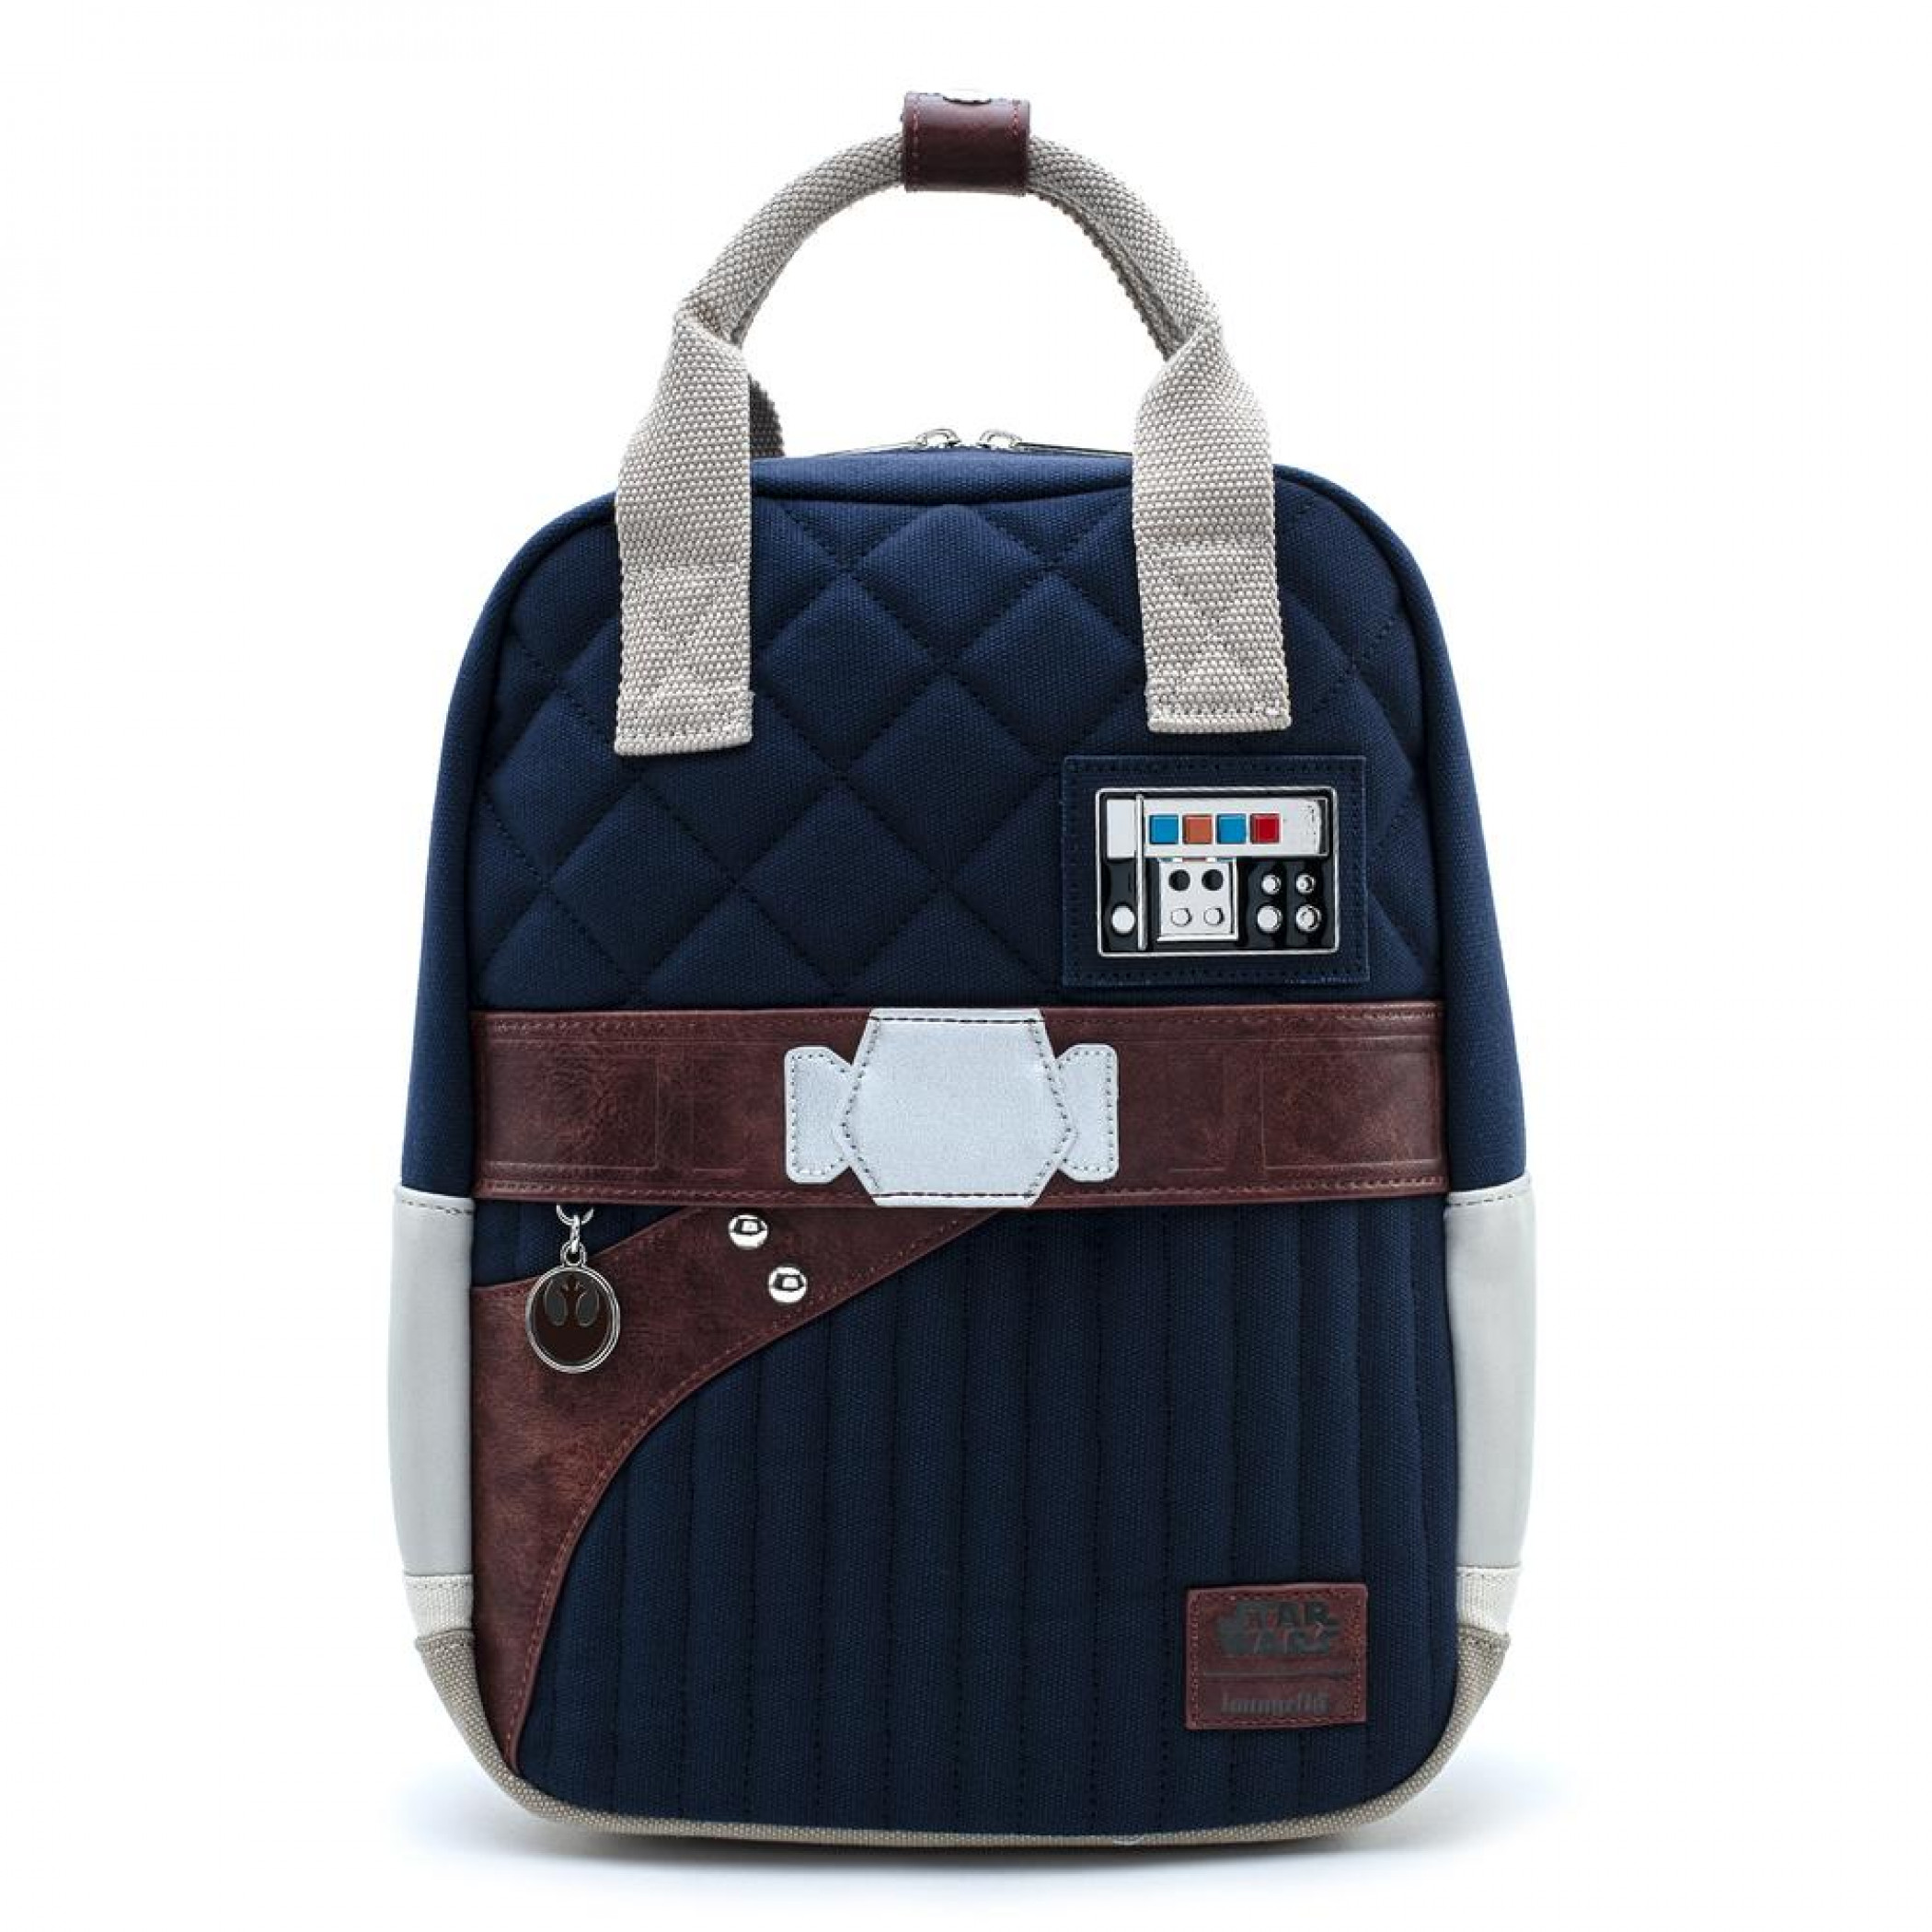 Star Wars Empire 40th Han Solo Hoth Outfit Mini Backpack by Loungefly